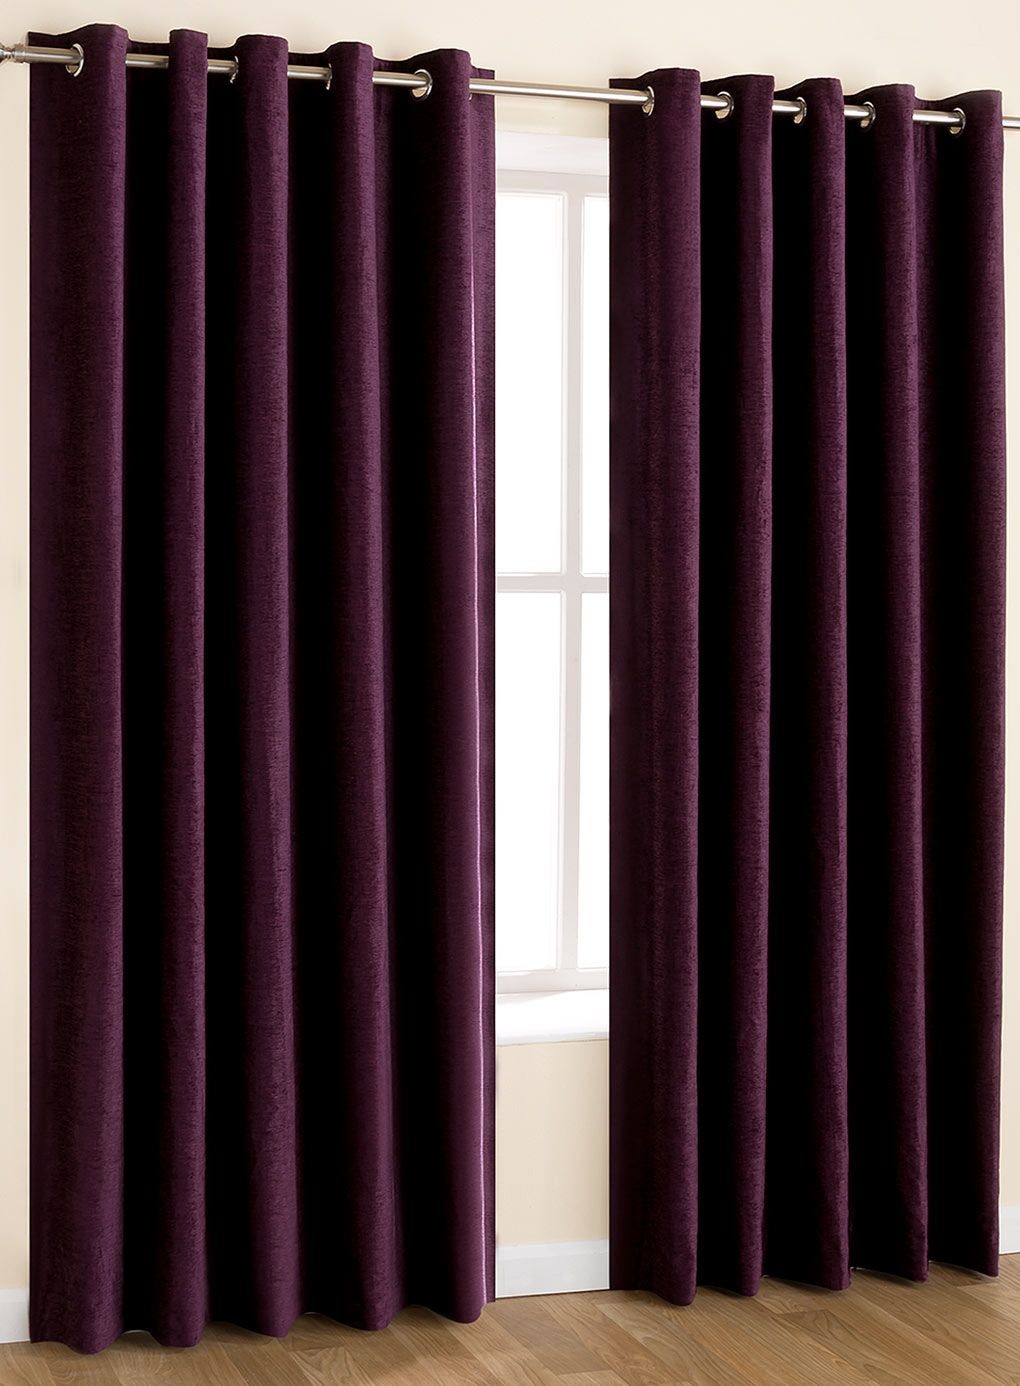 Plum curtains - Plum Curtains Plum Curtains 1000 Images About Bedroom Curtains On Pinterest Purple Bedrooms